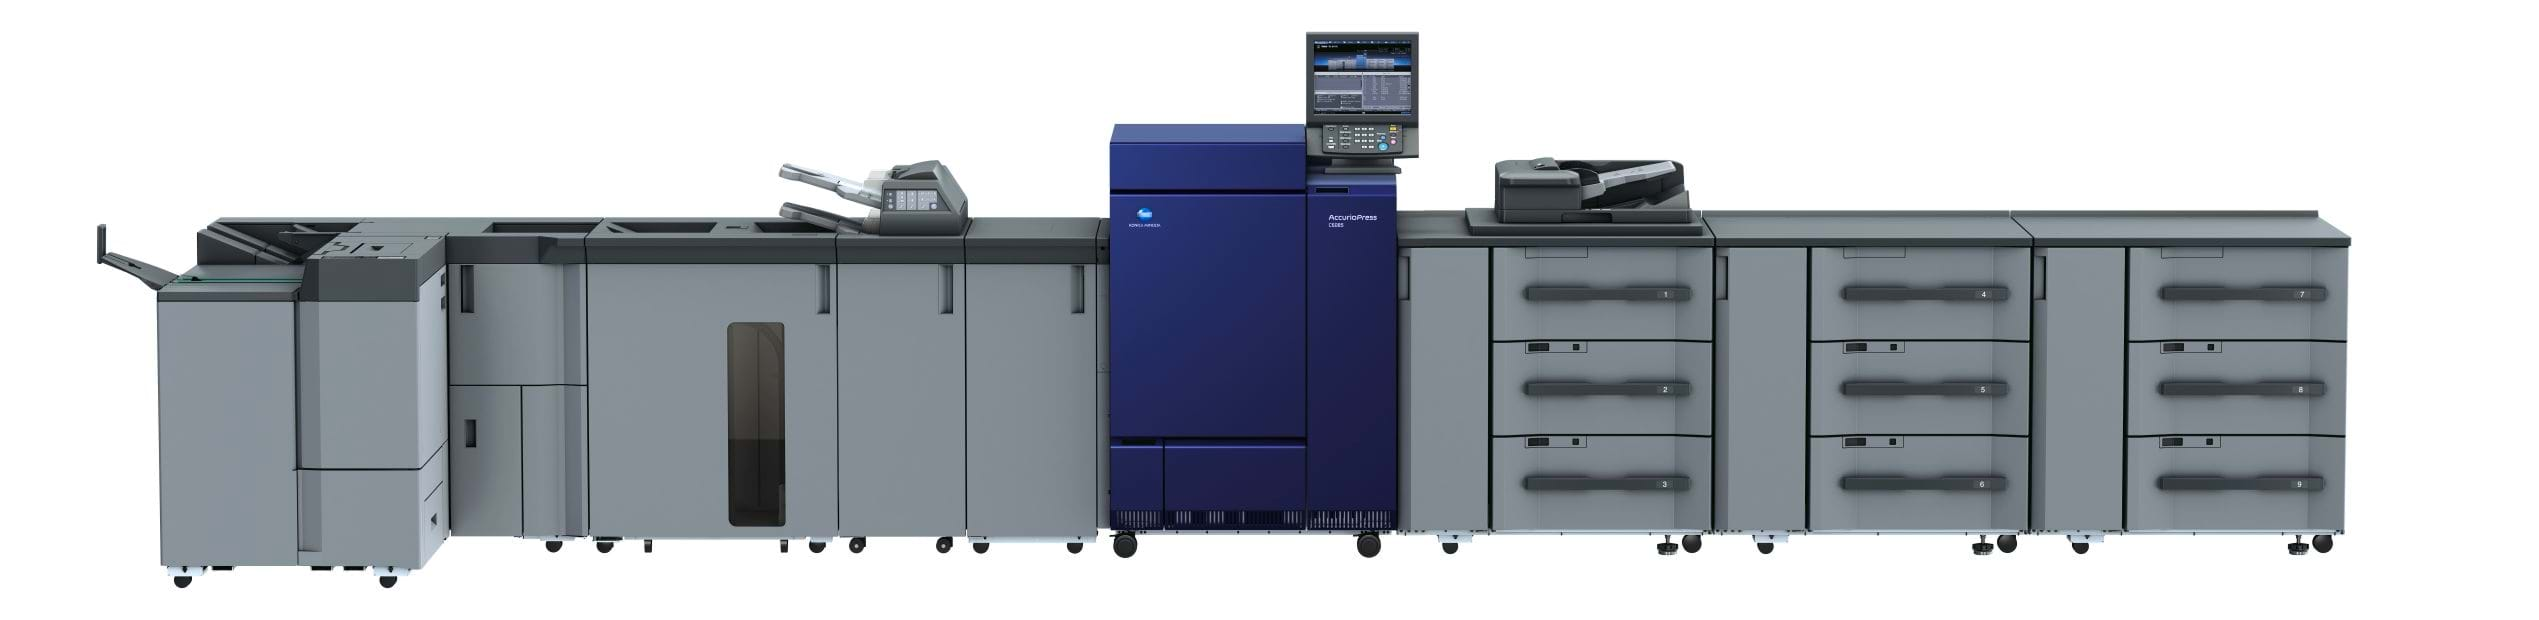 Konica Minolta accurio press c6085 professional printer